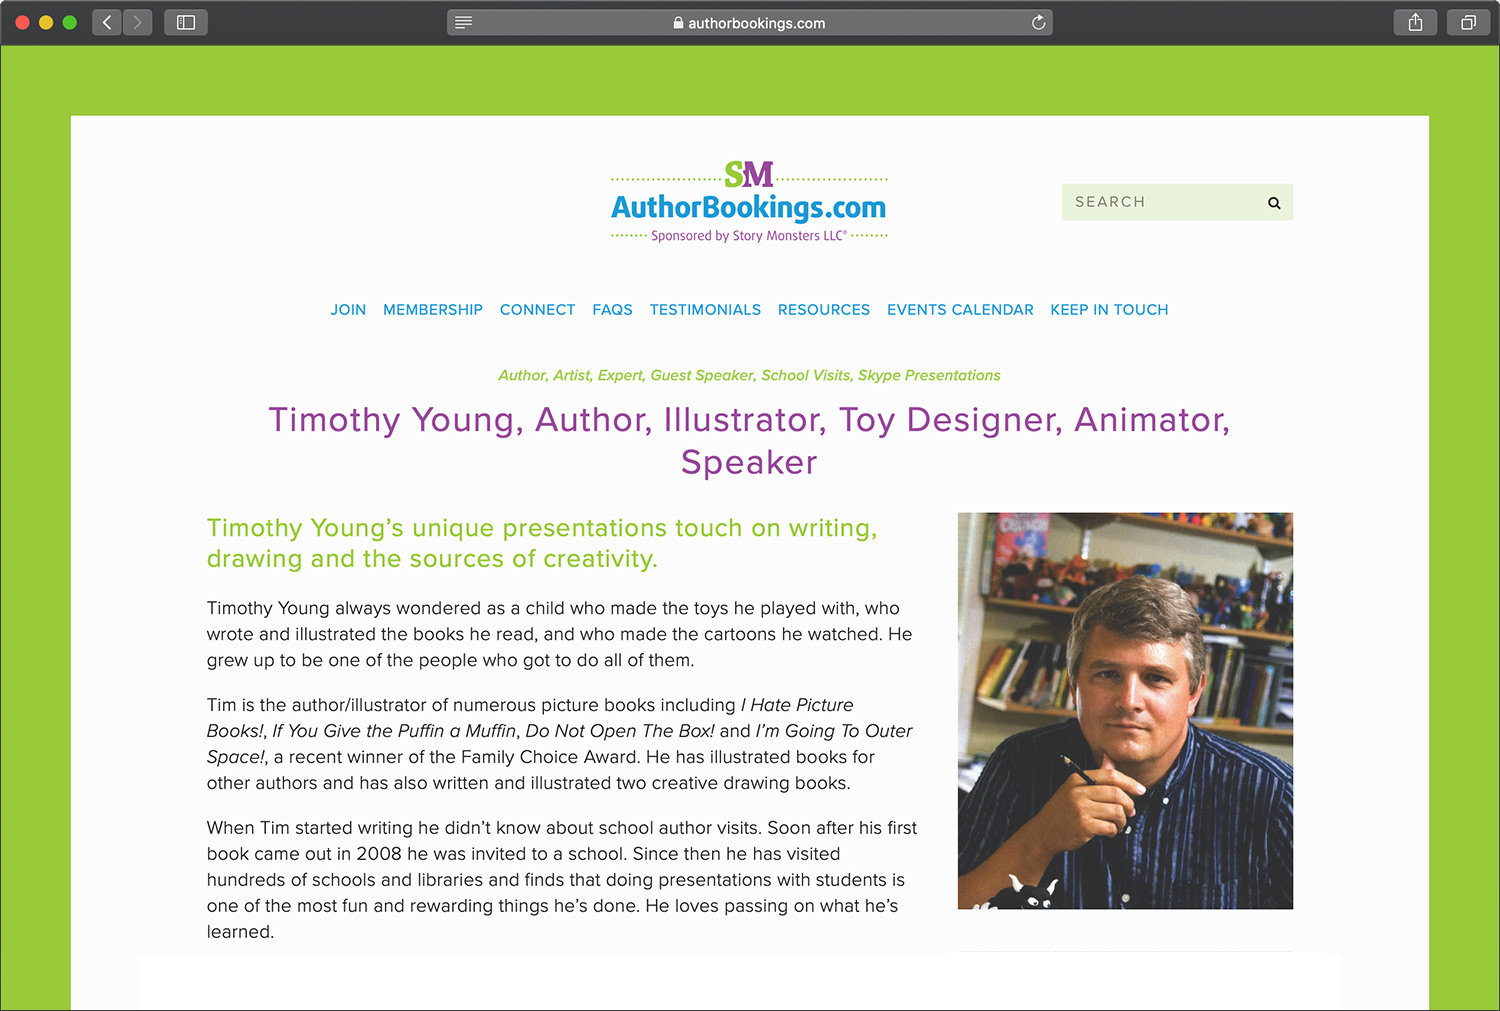 Author/Illustrator Timothy Young's listing on AuthorBookings.com